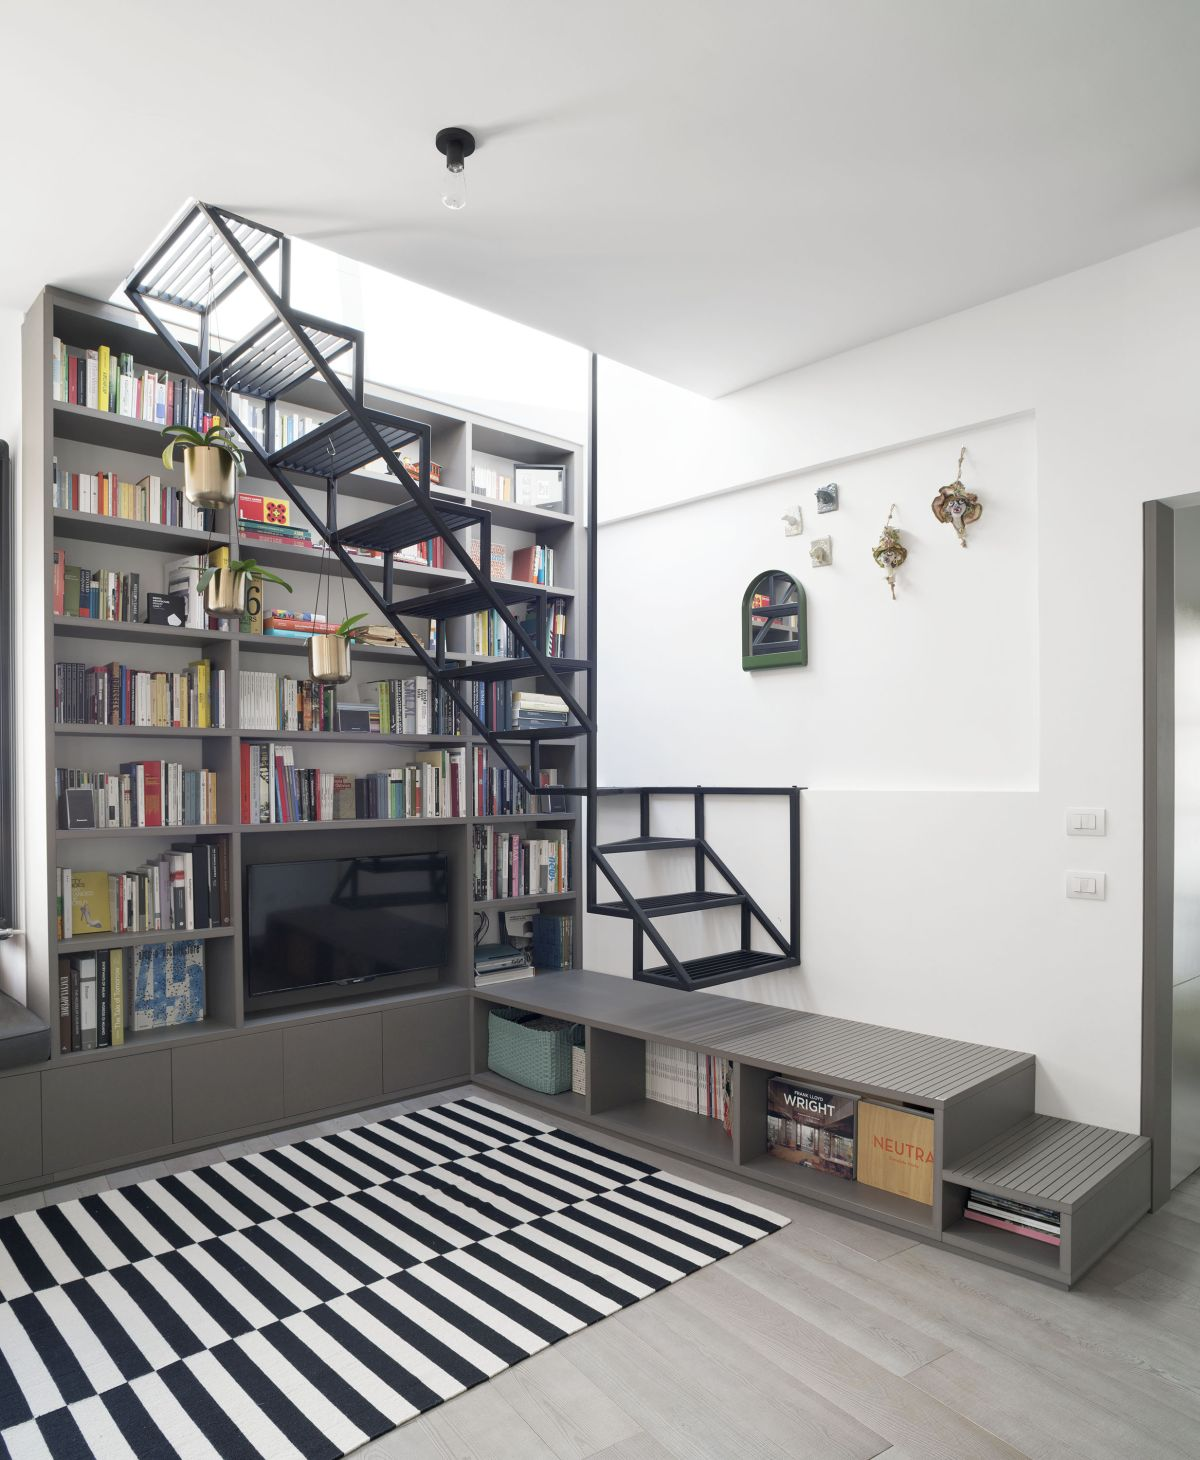 The stairs are integrated into the furniture is a surprisingly seamless manner